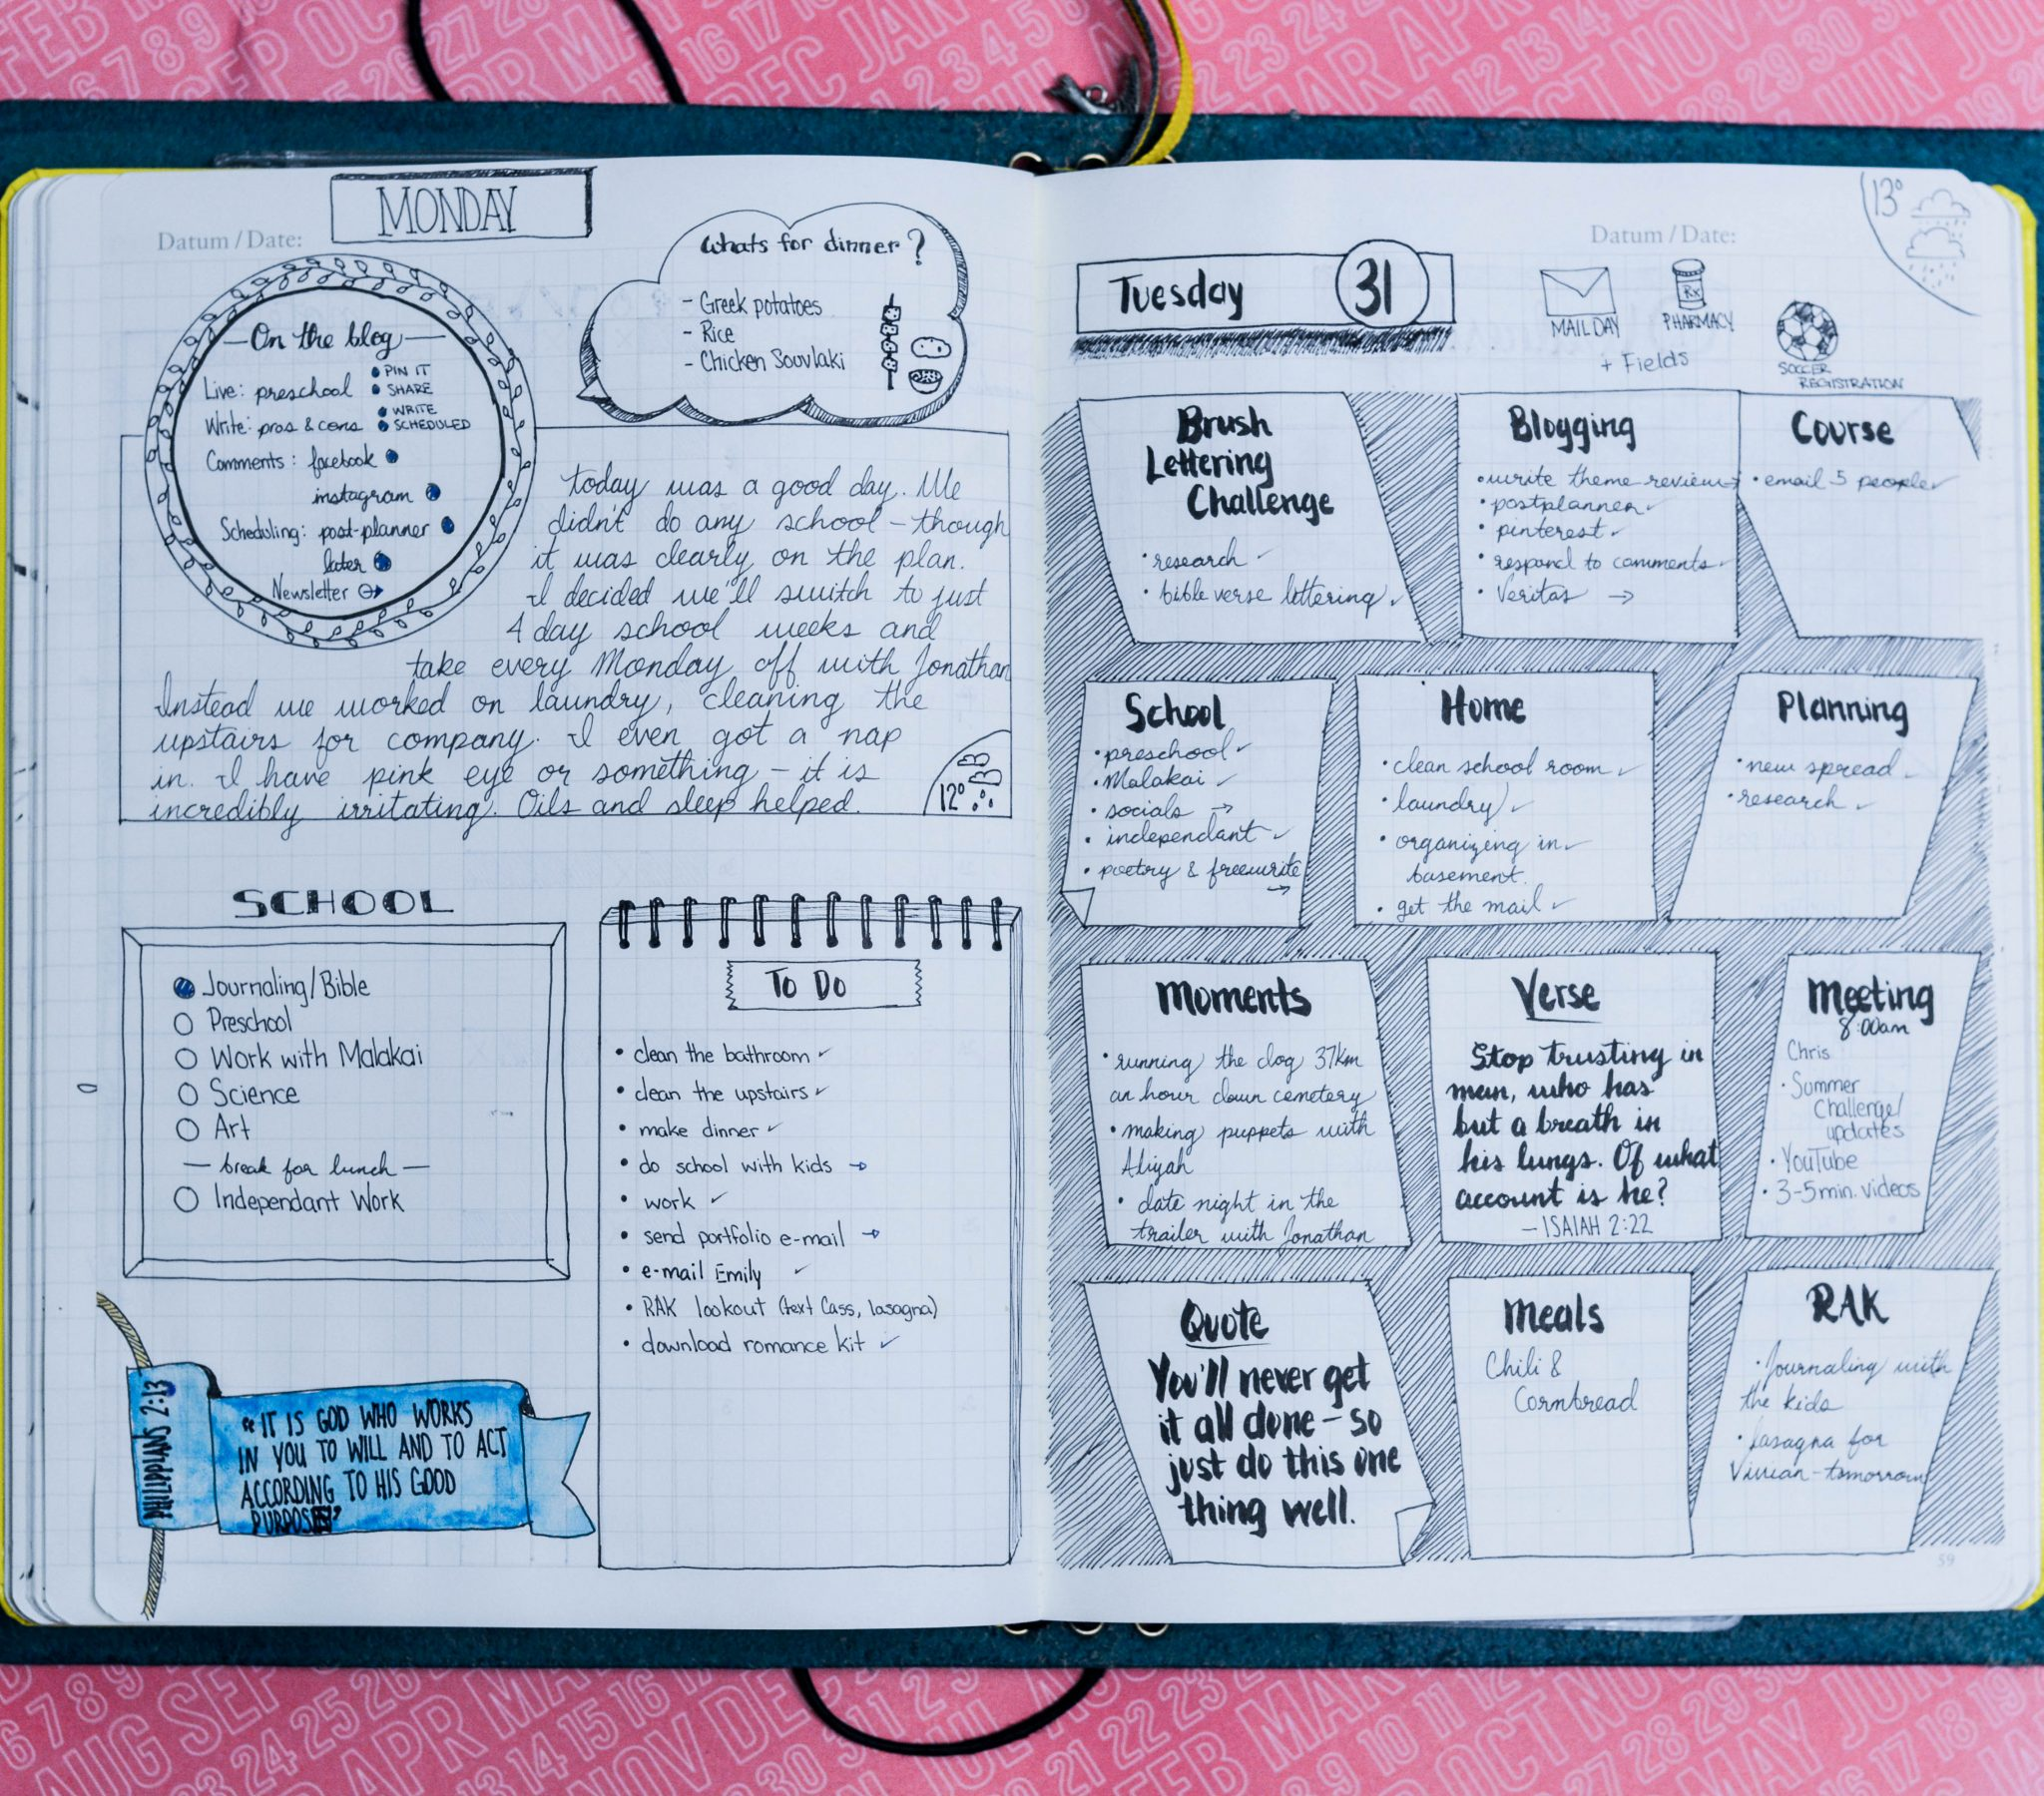 Bullet Journal layout ideas | bullet journaling | bullet journal | bullet journal junkies | bullet journaling community | bullet journal community | bujo | bujo layout | bujo spread | bullet journal spread | bullet journaling ideas | bullet journal ideas | planner ideas | planner spreads